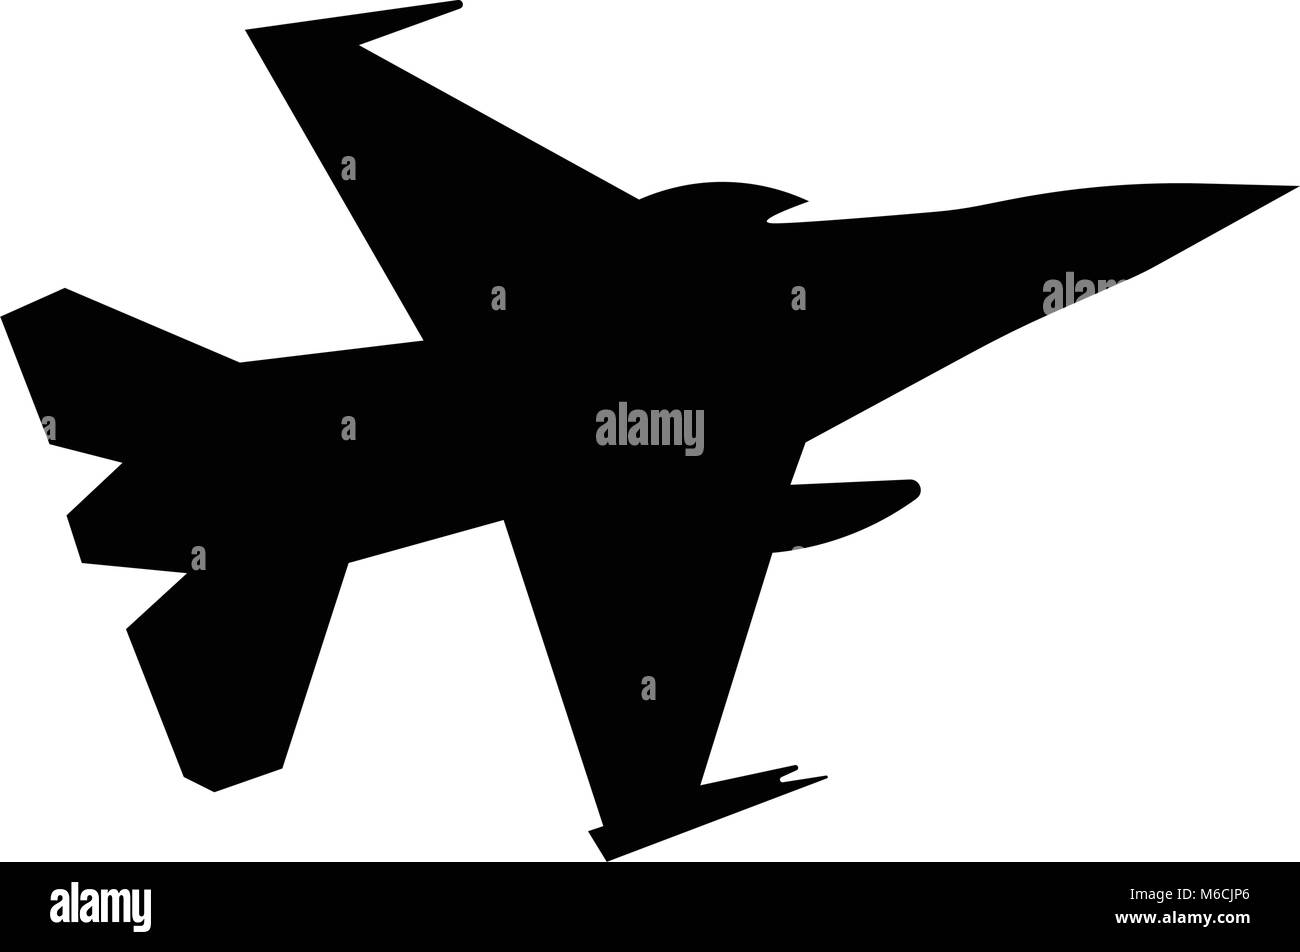 F16 Silhouette On White Background Stock Vector Image Art Alamy